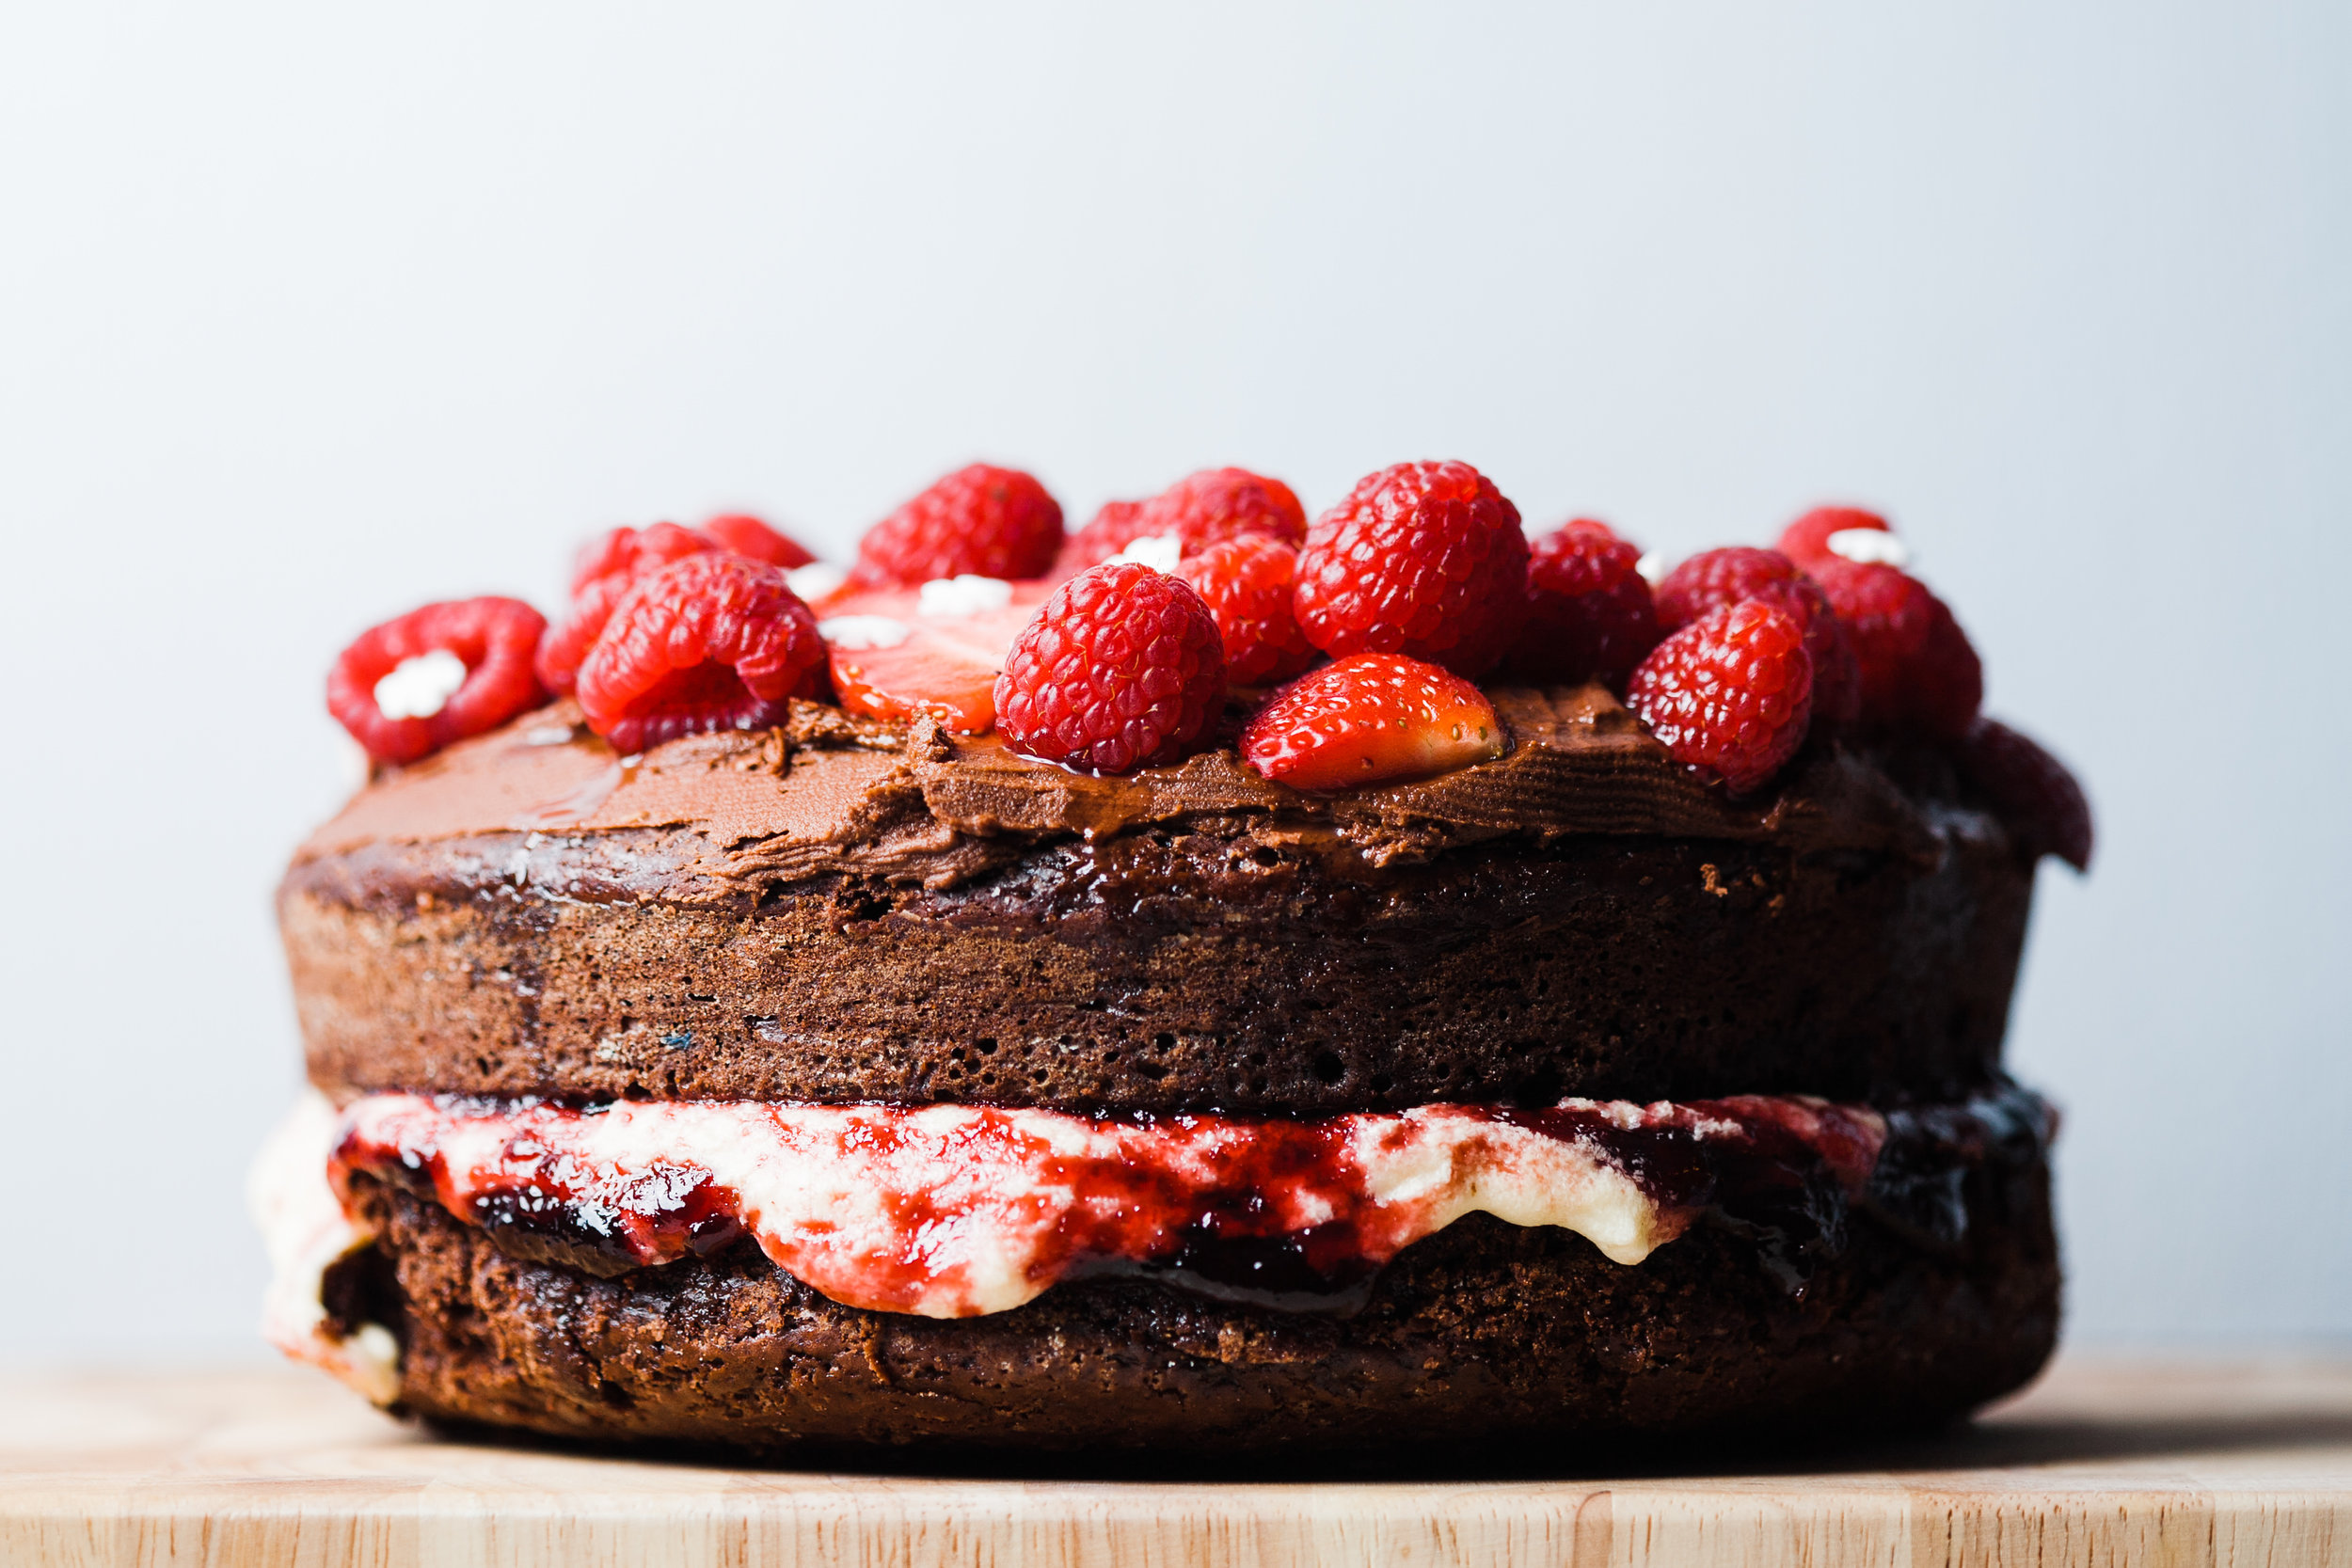 Side view of a vegan chocolate cake with strawberries and raspberries on top